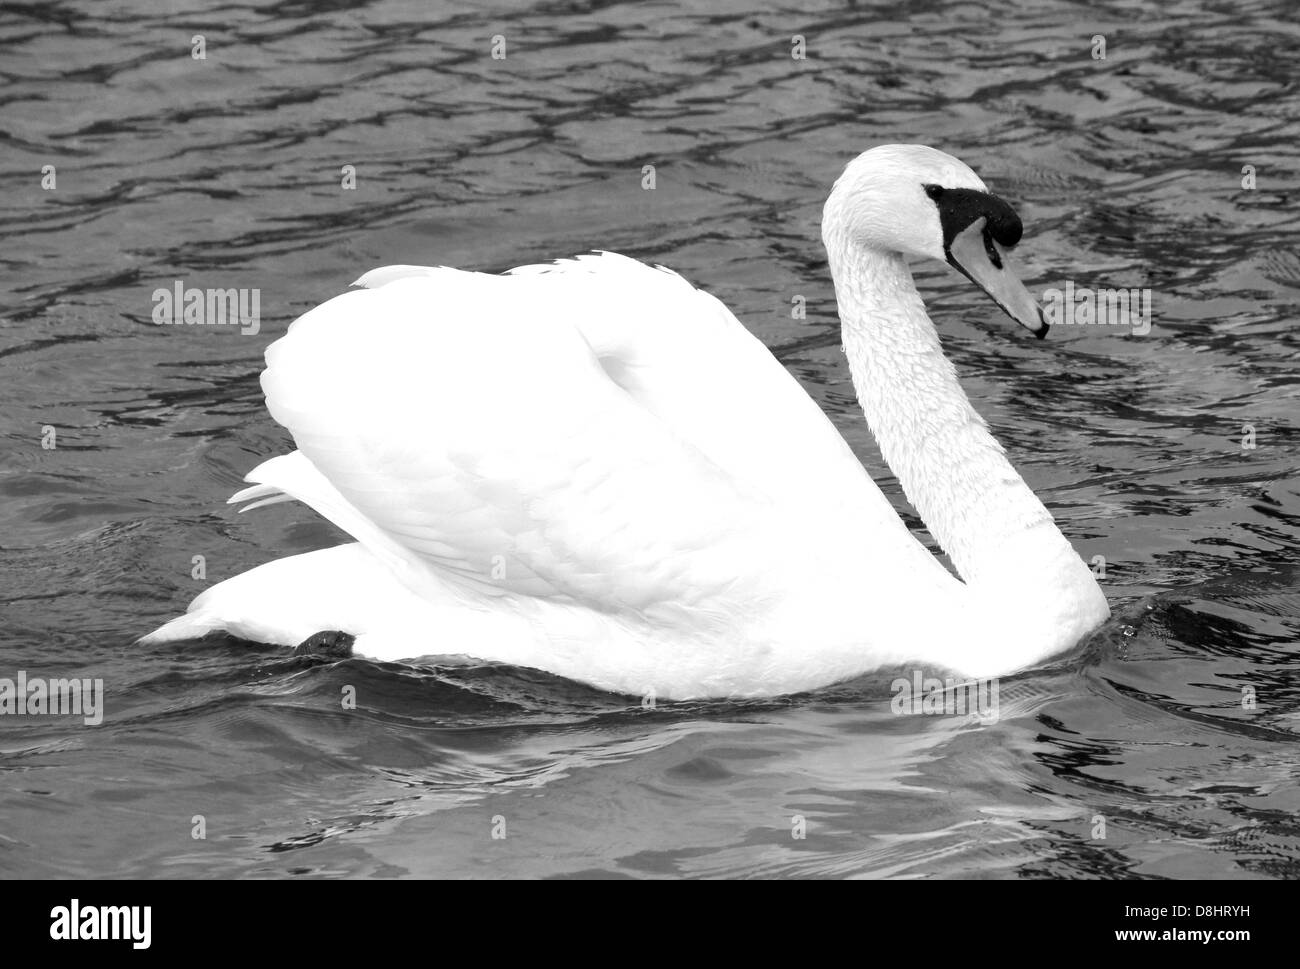 B&W photo of a Swan swimming on The River Thames at Windsor - Stock Image